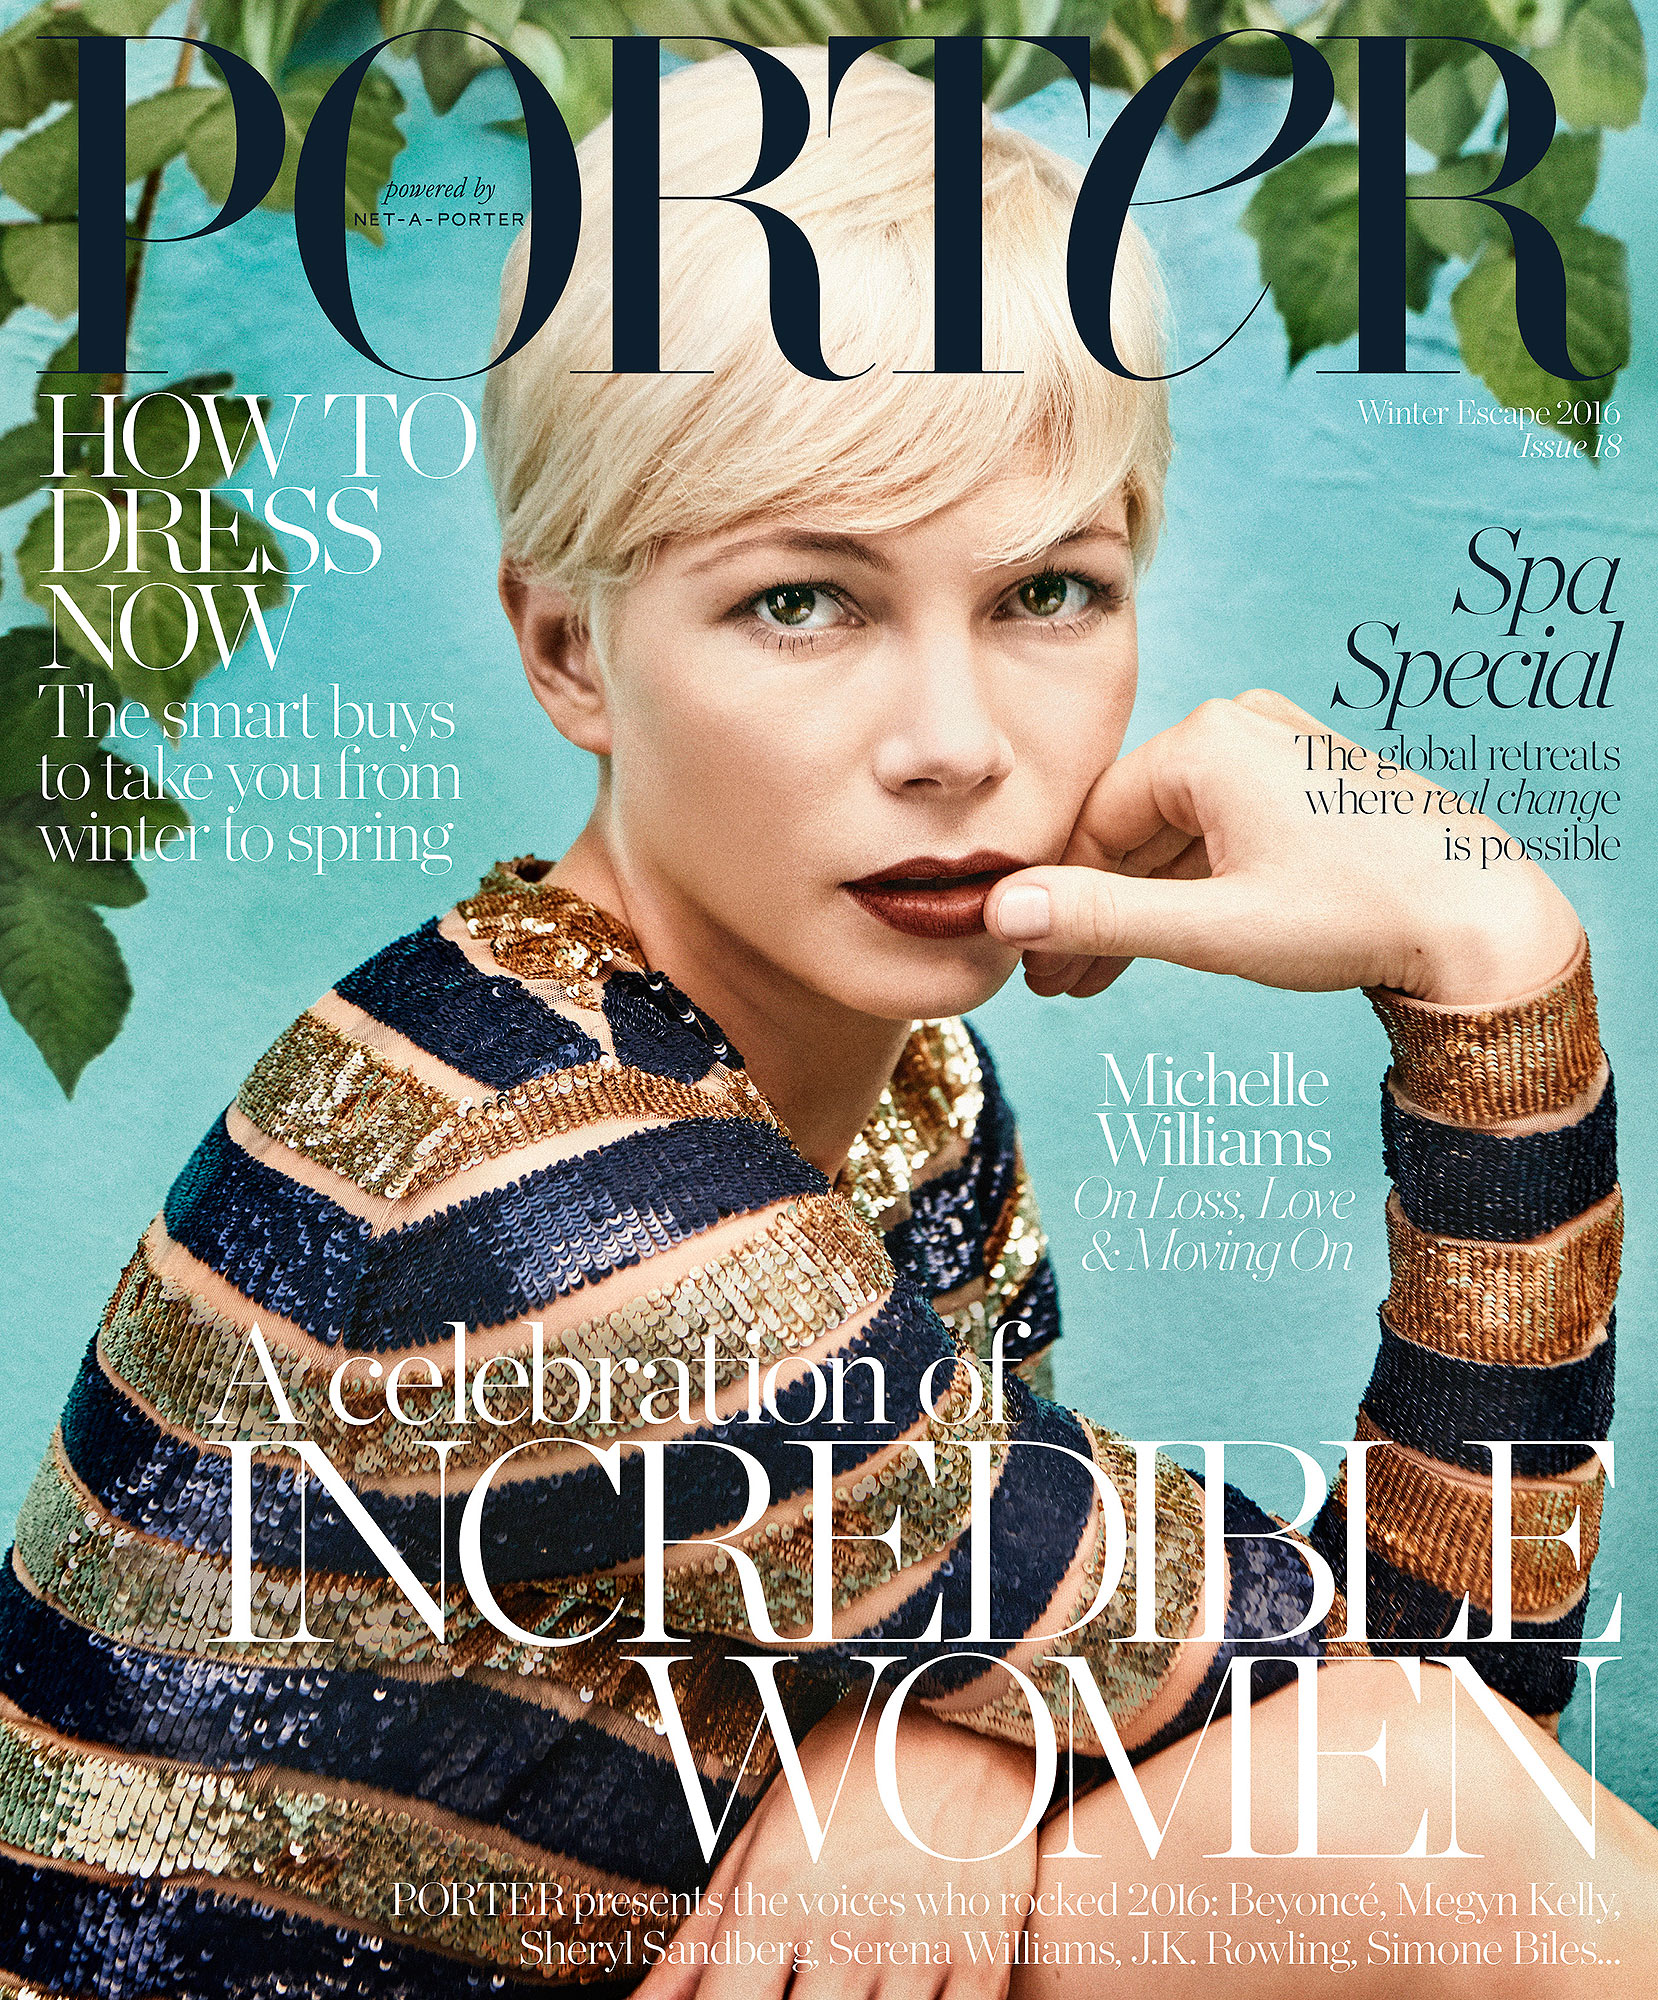 Michelle Williams wears dress by Michael Kors, photographed by Ryan McGinley for PORTER